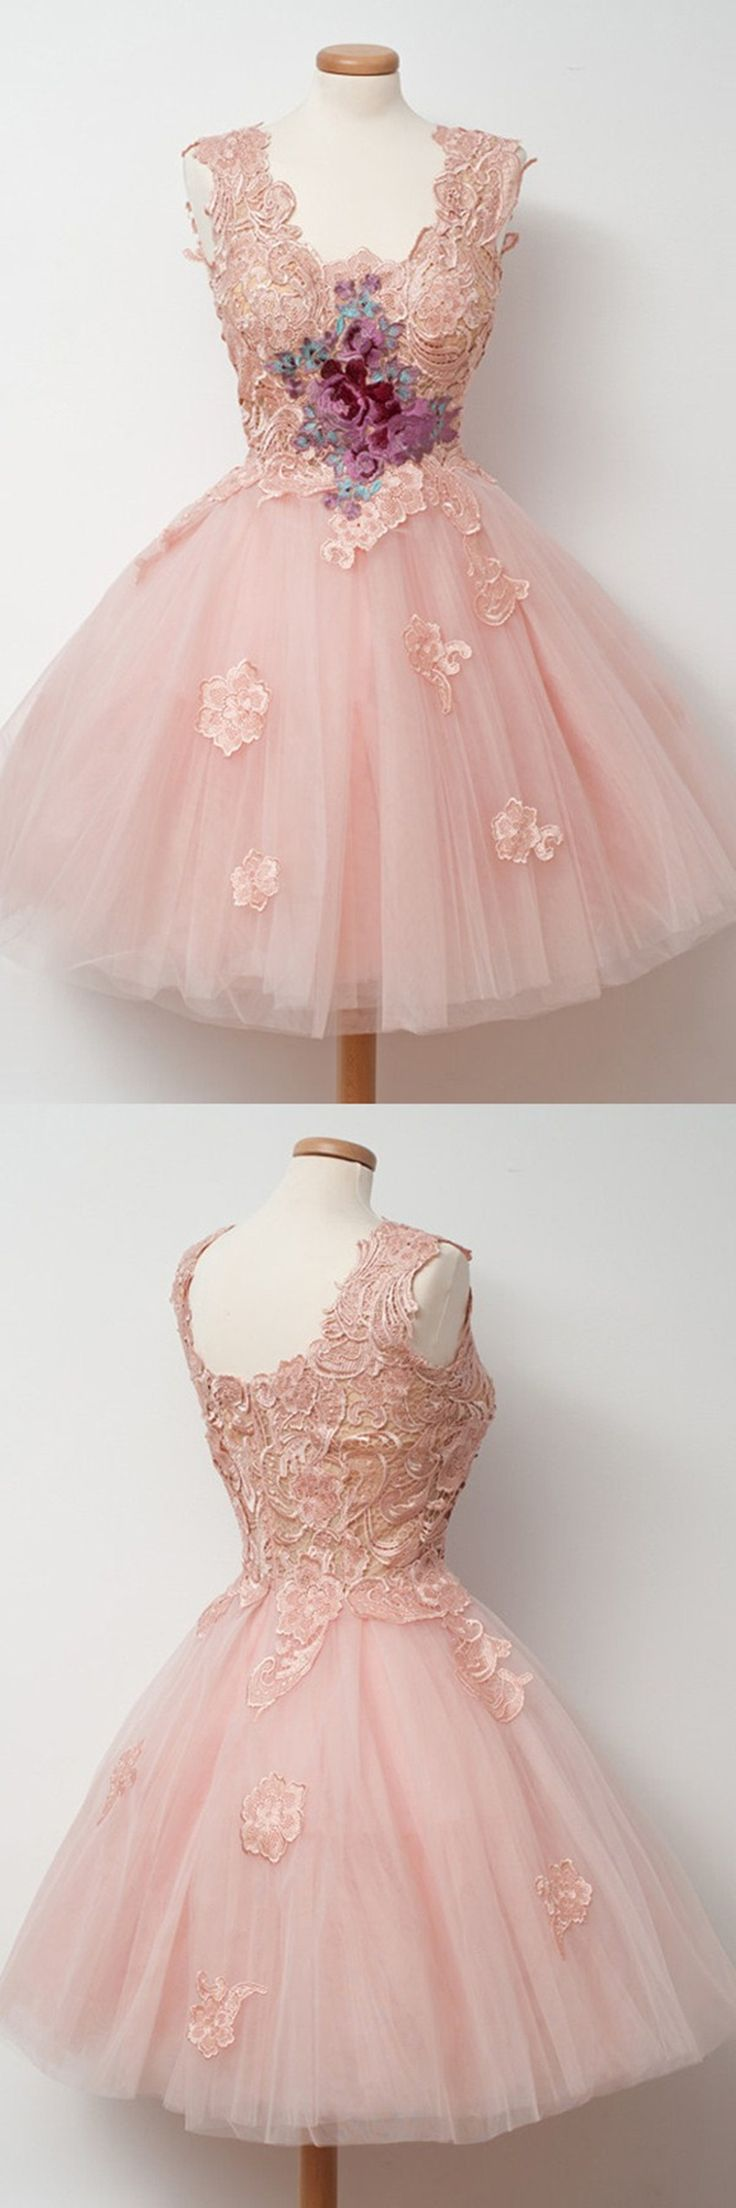 2016 homecoming dresses,pink homecoming dresses,lace homecoming dresses,homecoming dress for teens,back to school dresses